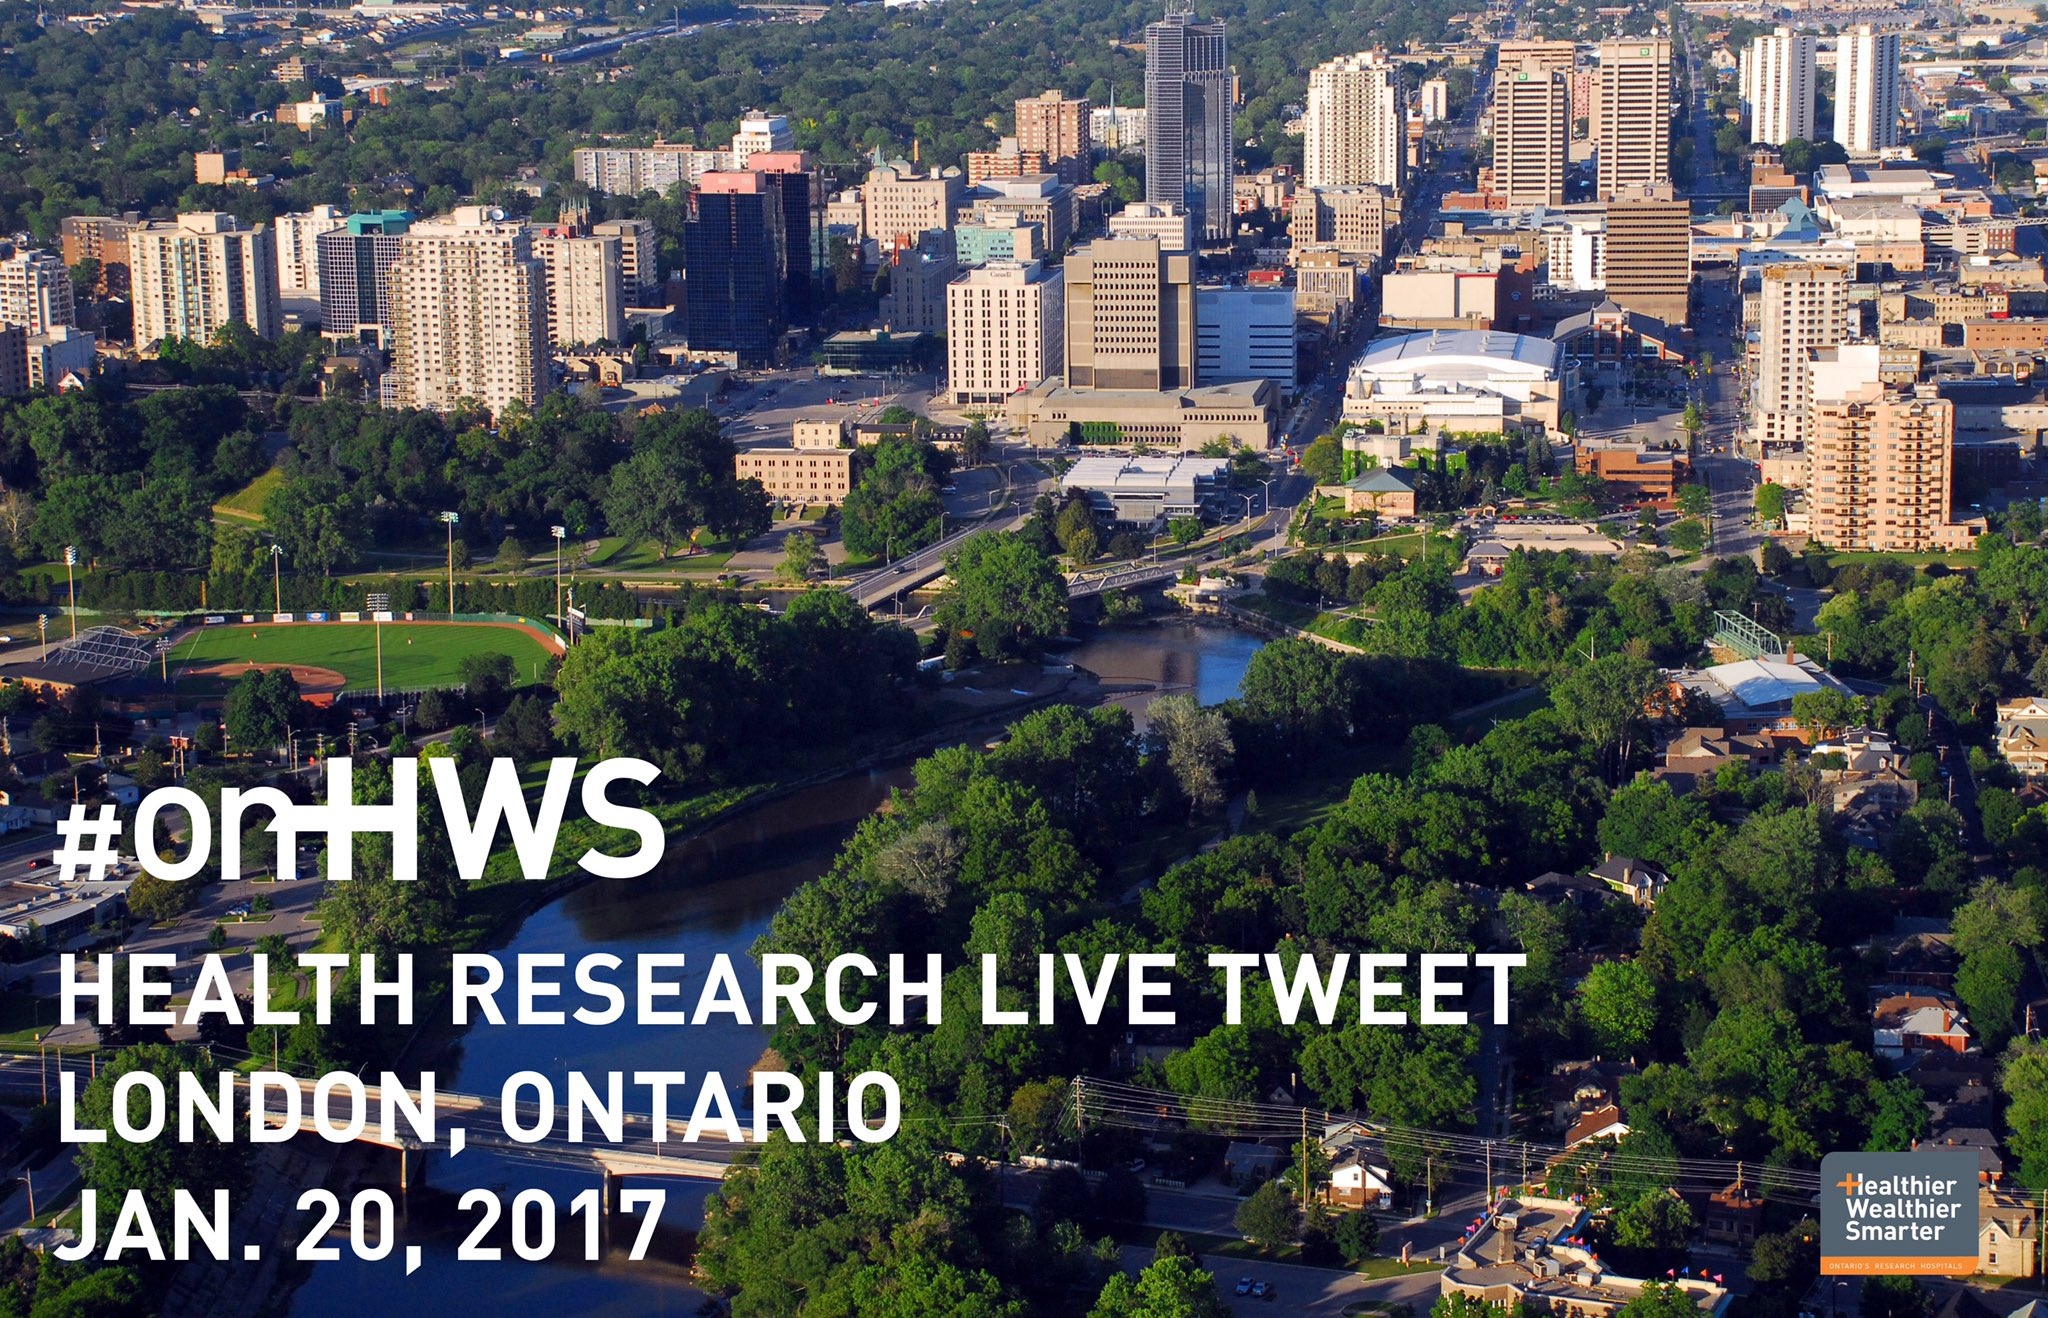 TODAY: #LdnOnt is home to world-class researchers. Tune into #onHWS all day to see what they've been working on. #hcsmca #onhealth https://t.co/PjDbSmYBEg